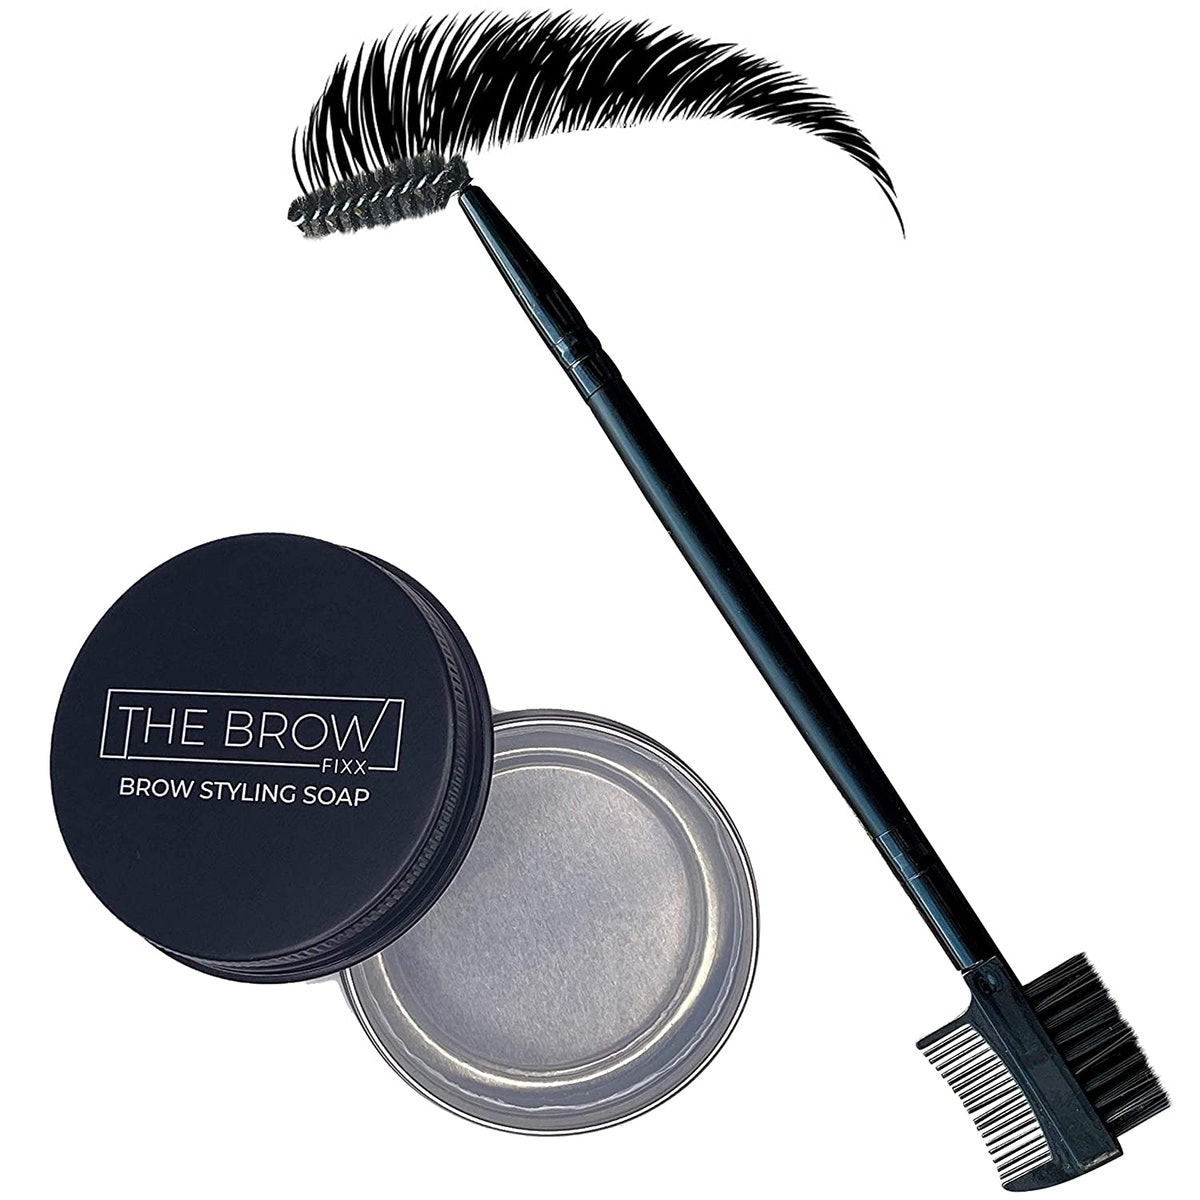 The Brow Fixx Brow Styling Soap